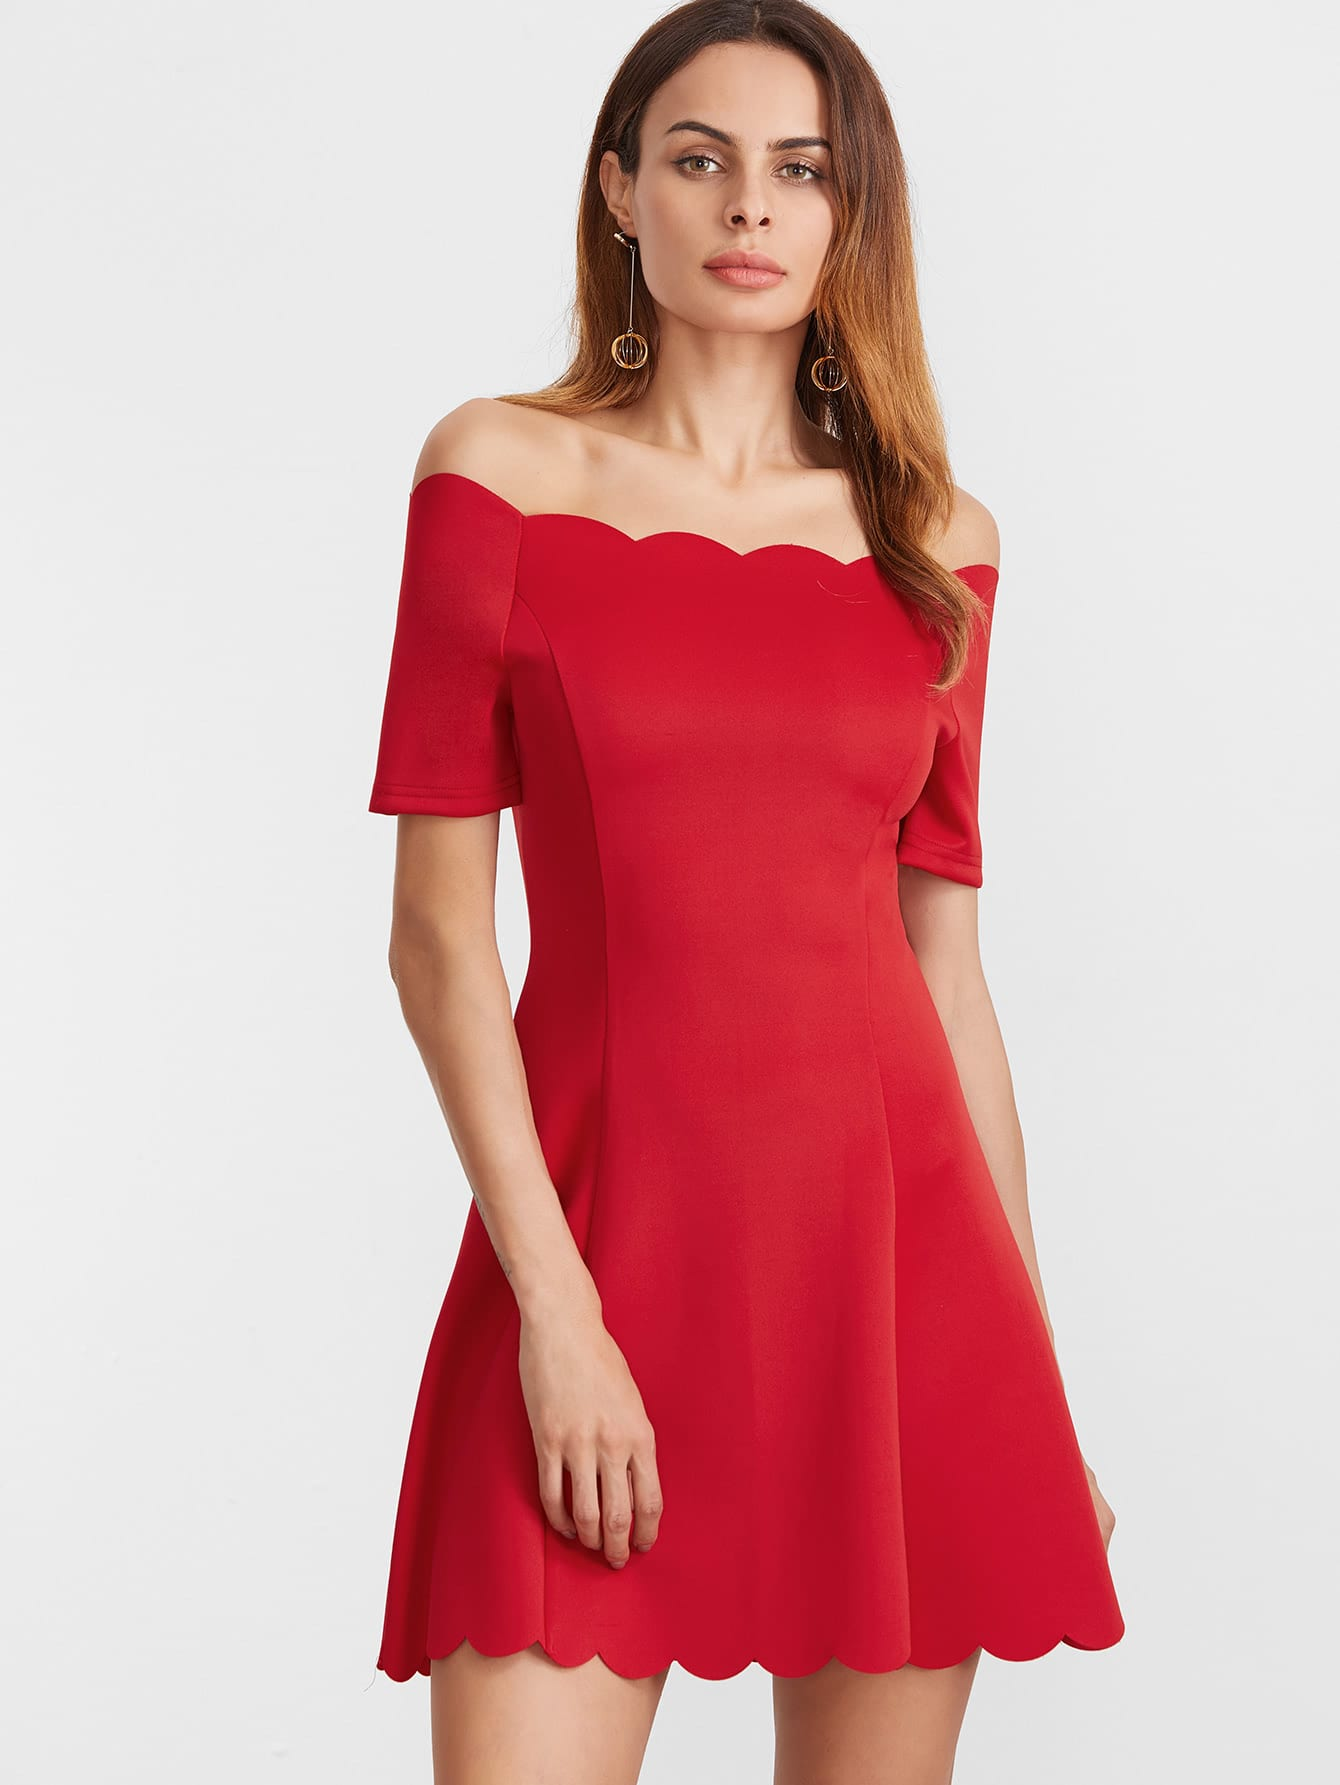 Scallop Edge Bardot Neckline Fit And Flare Dress zip back fit and flare splicing dress